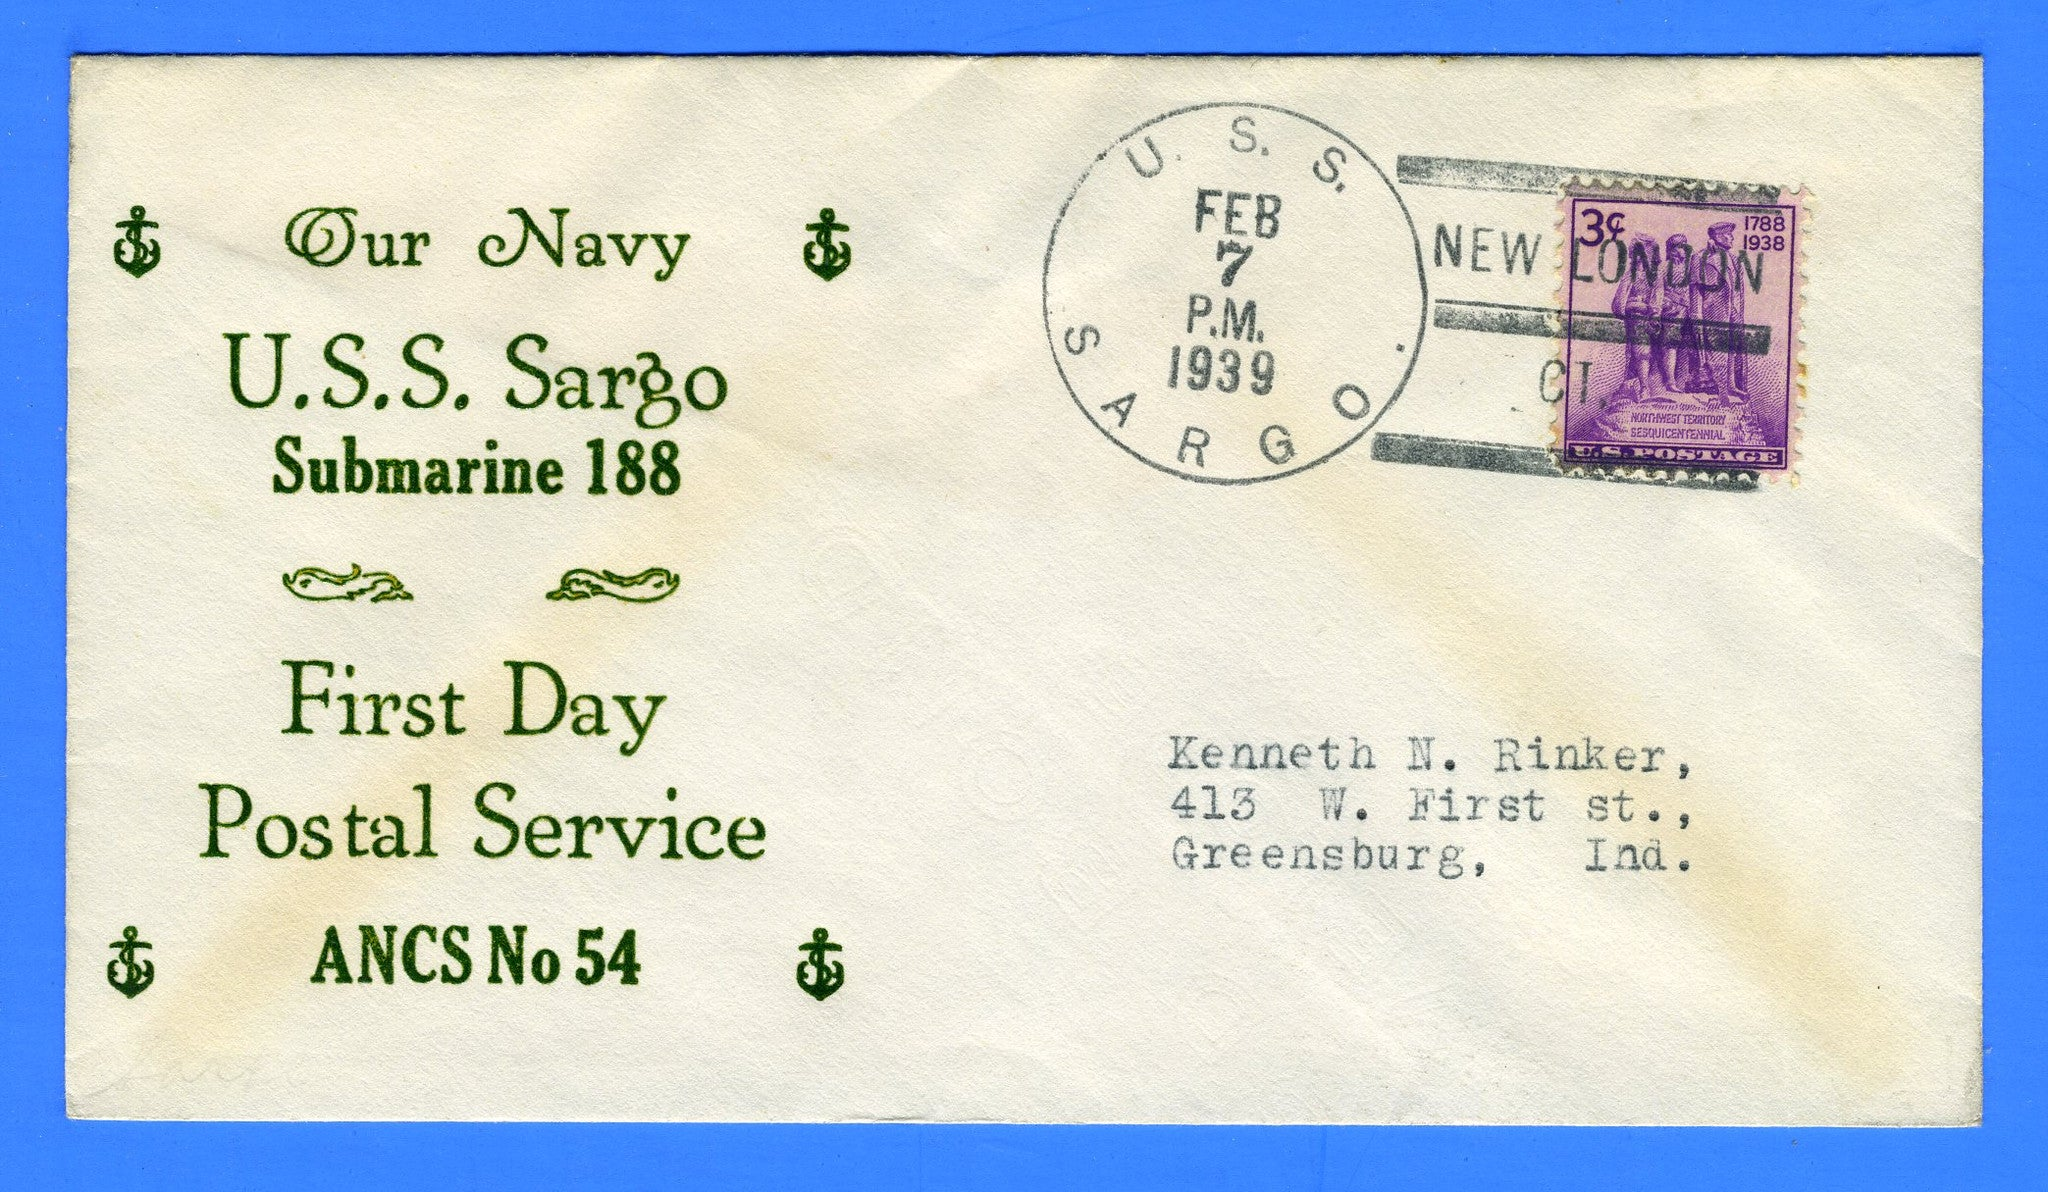 USS Sargo SS-188 First Day Postal Service & Commissioning February 7, 1939